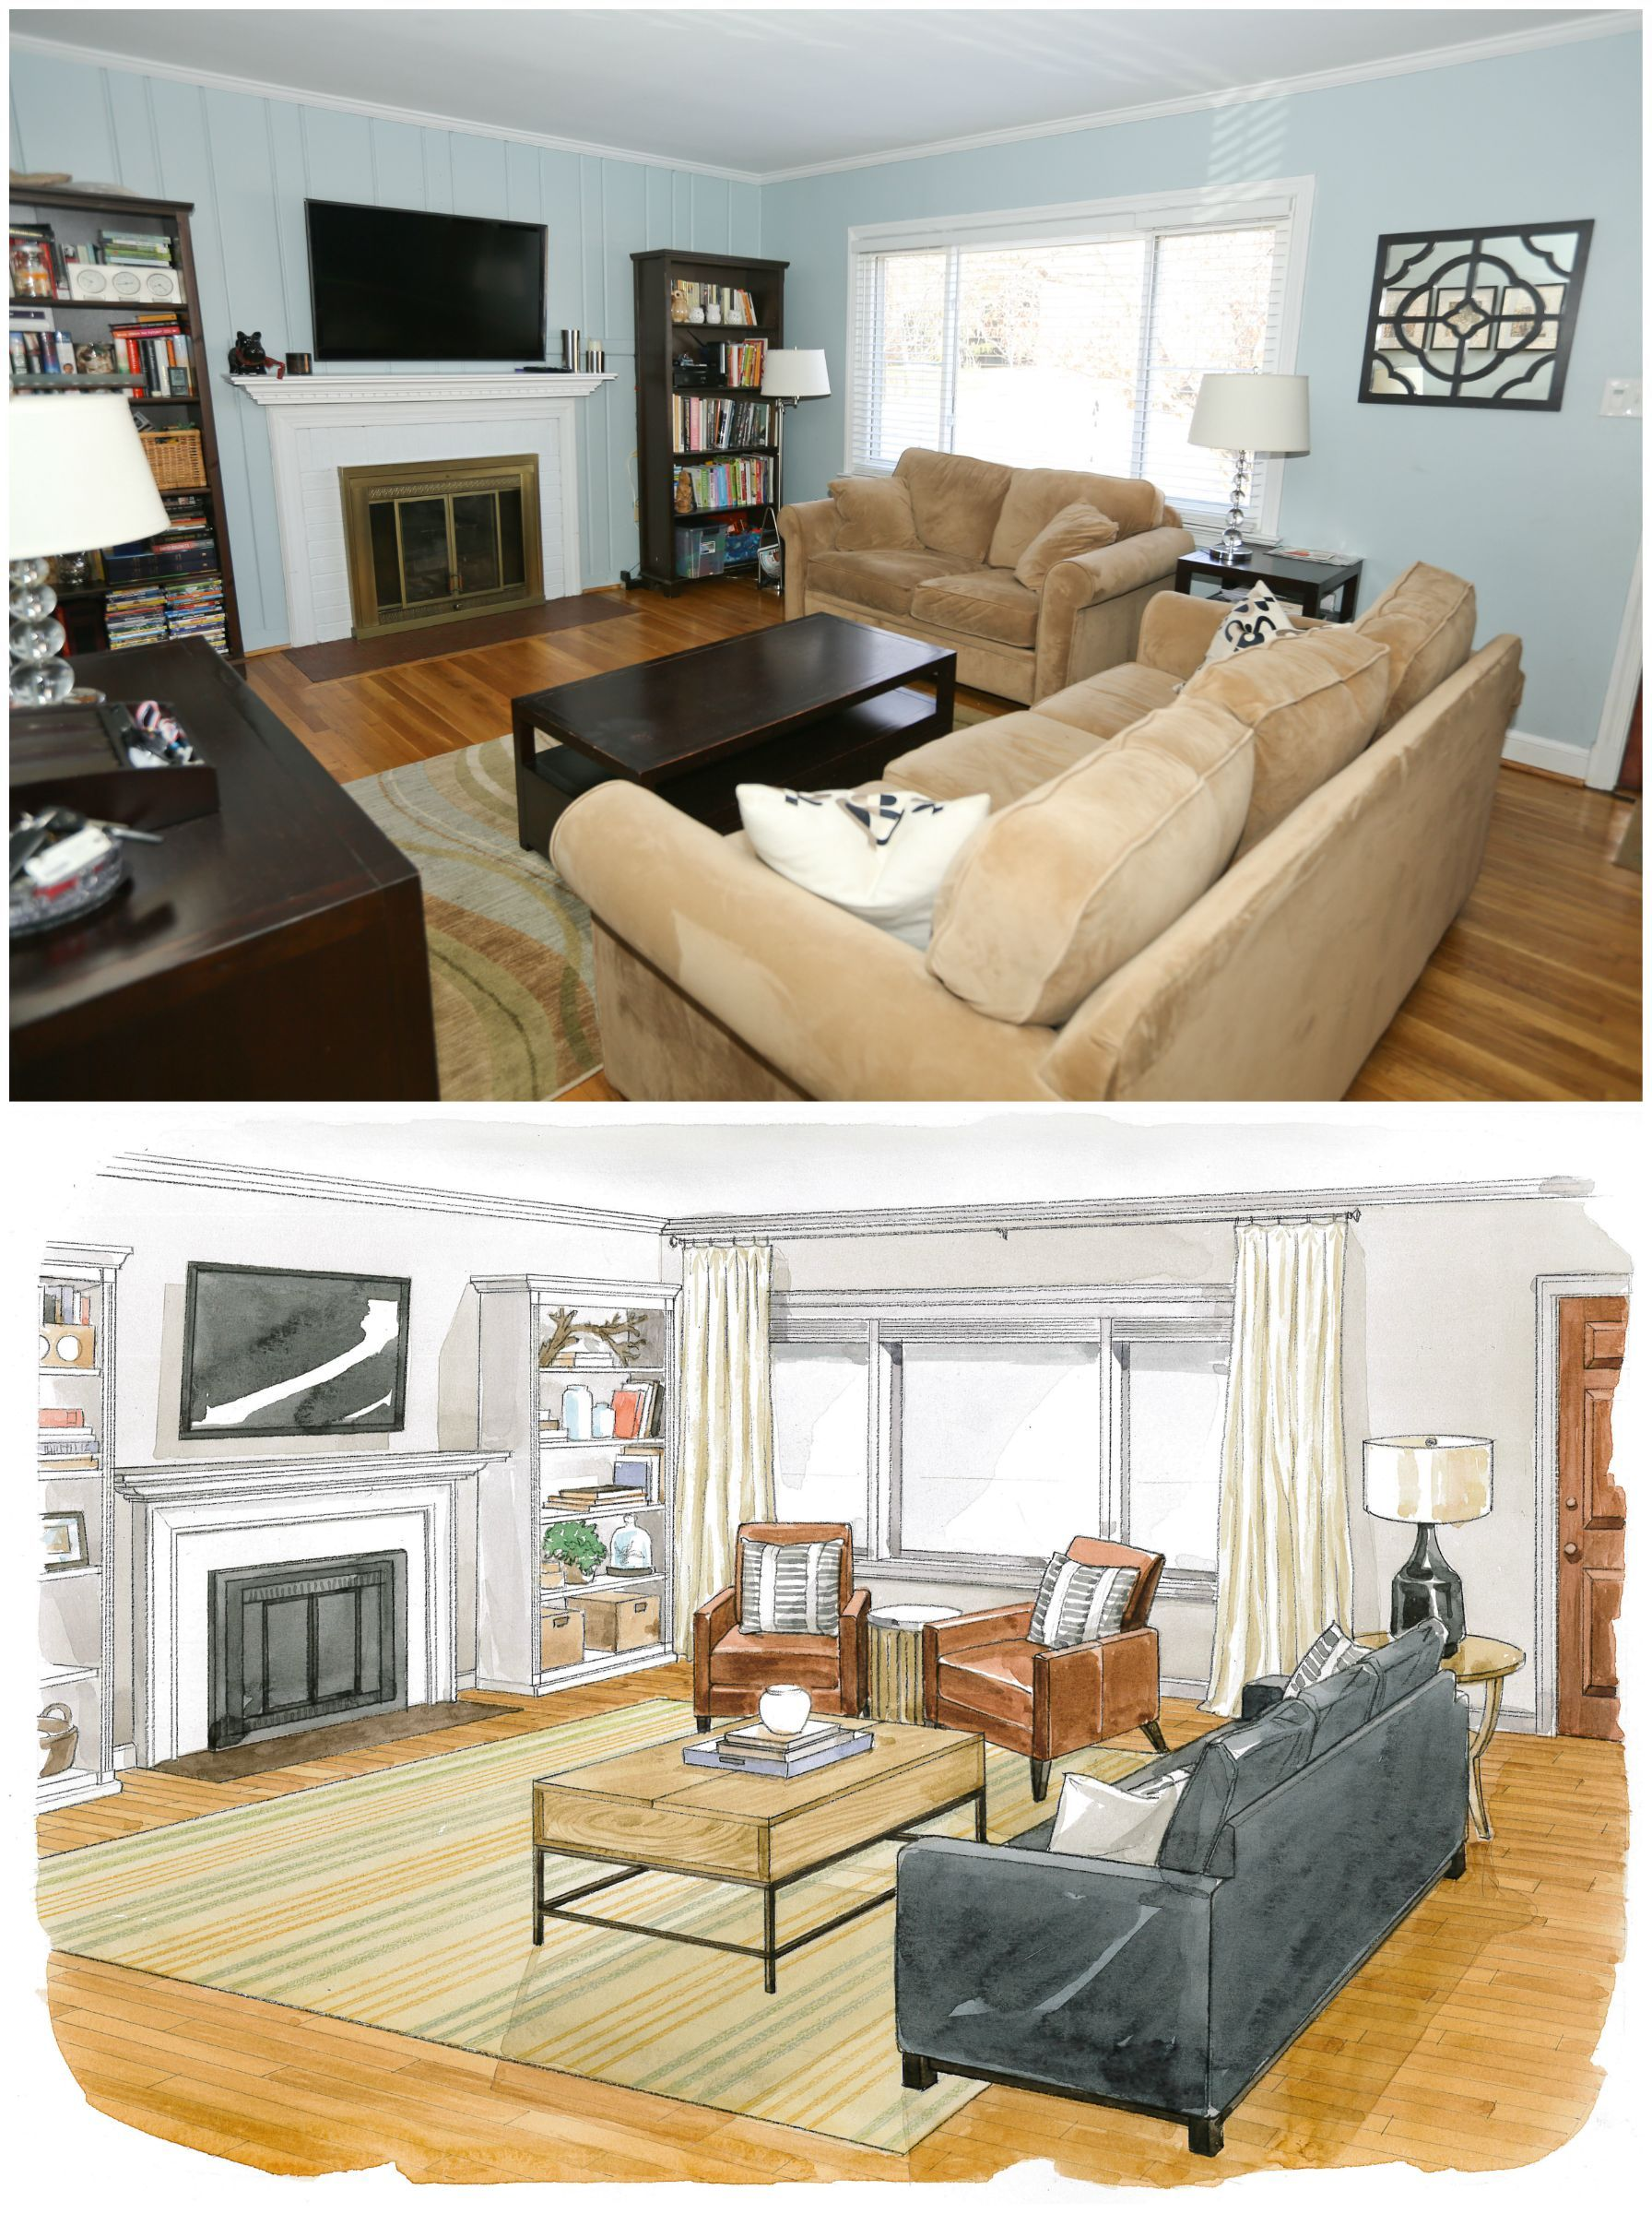 House calls how to make a small living room comfortable and kid house calls how to make a small living room comfortable and kid friendly geotapseo Image collections